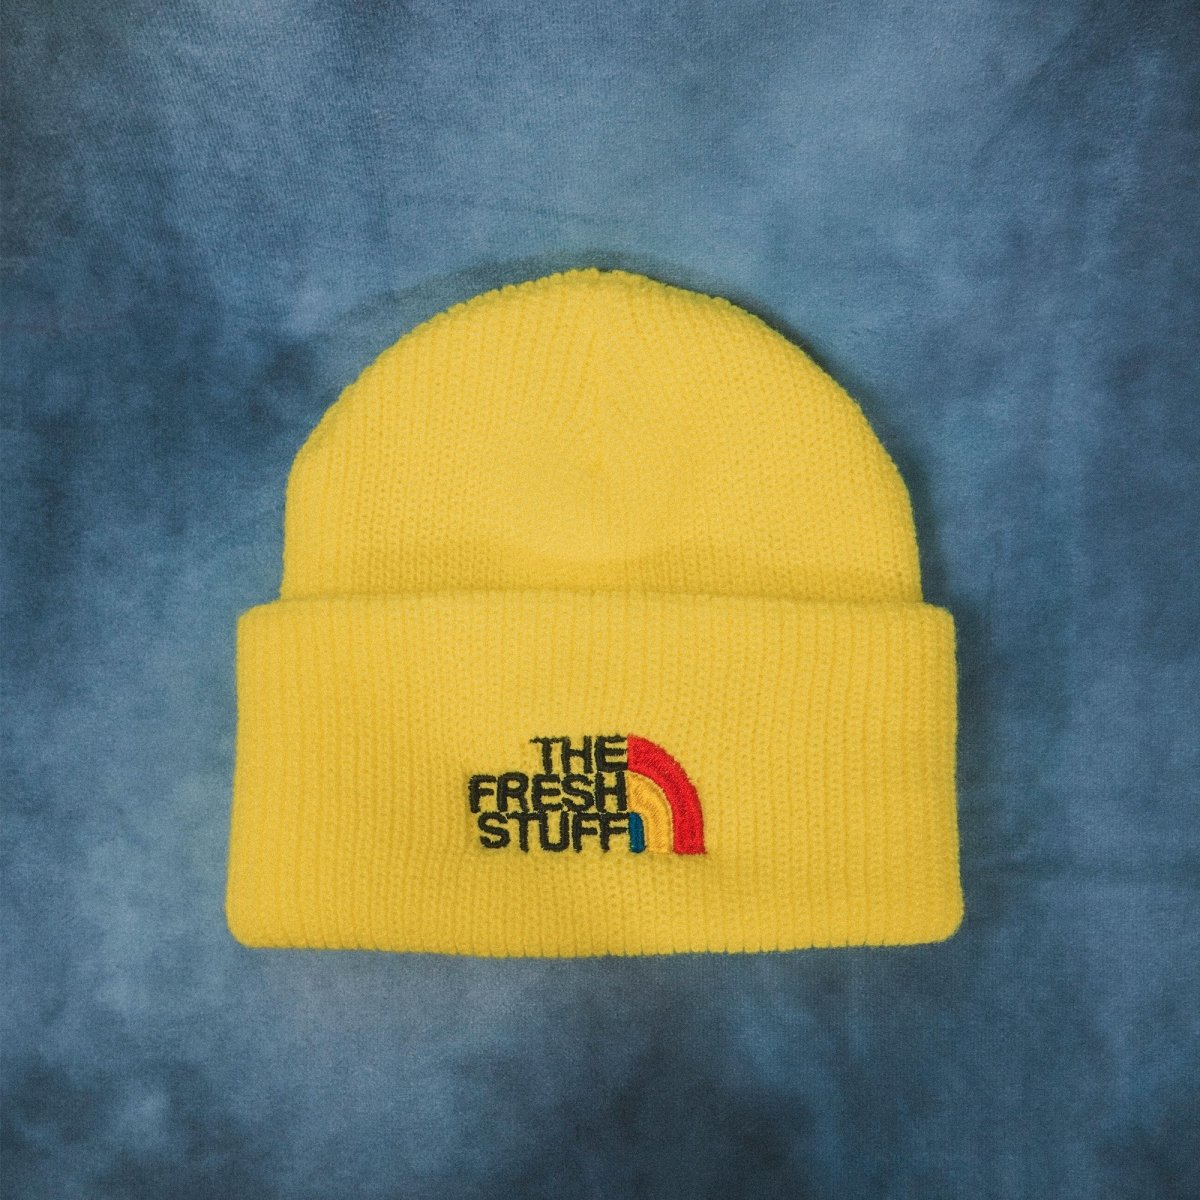 The Fresh Stuff Expedition Embroidered Neon Yellow Beanie